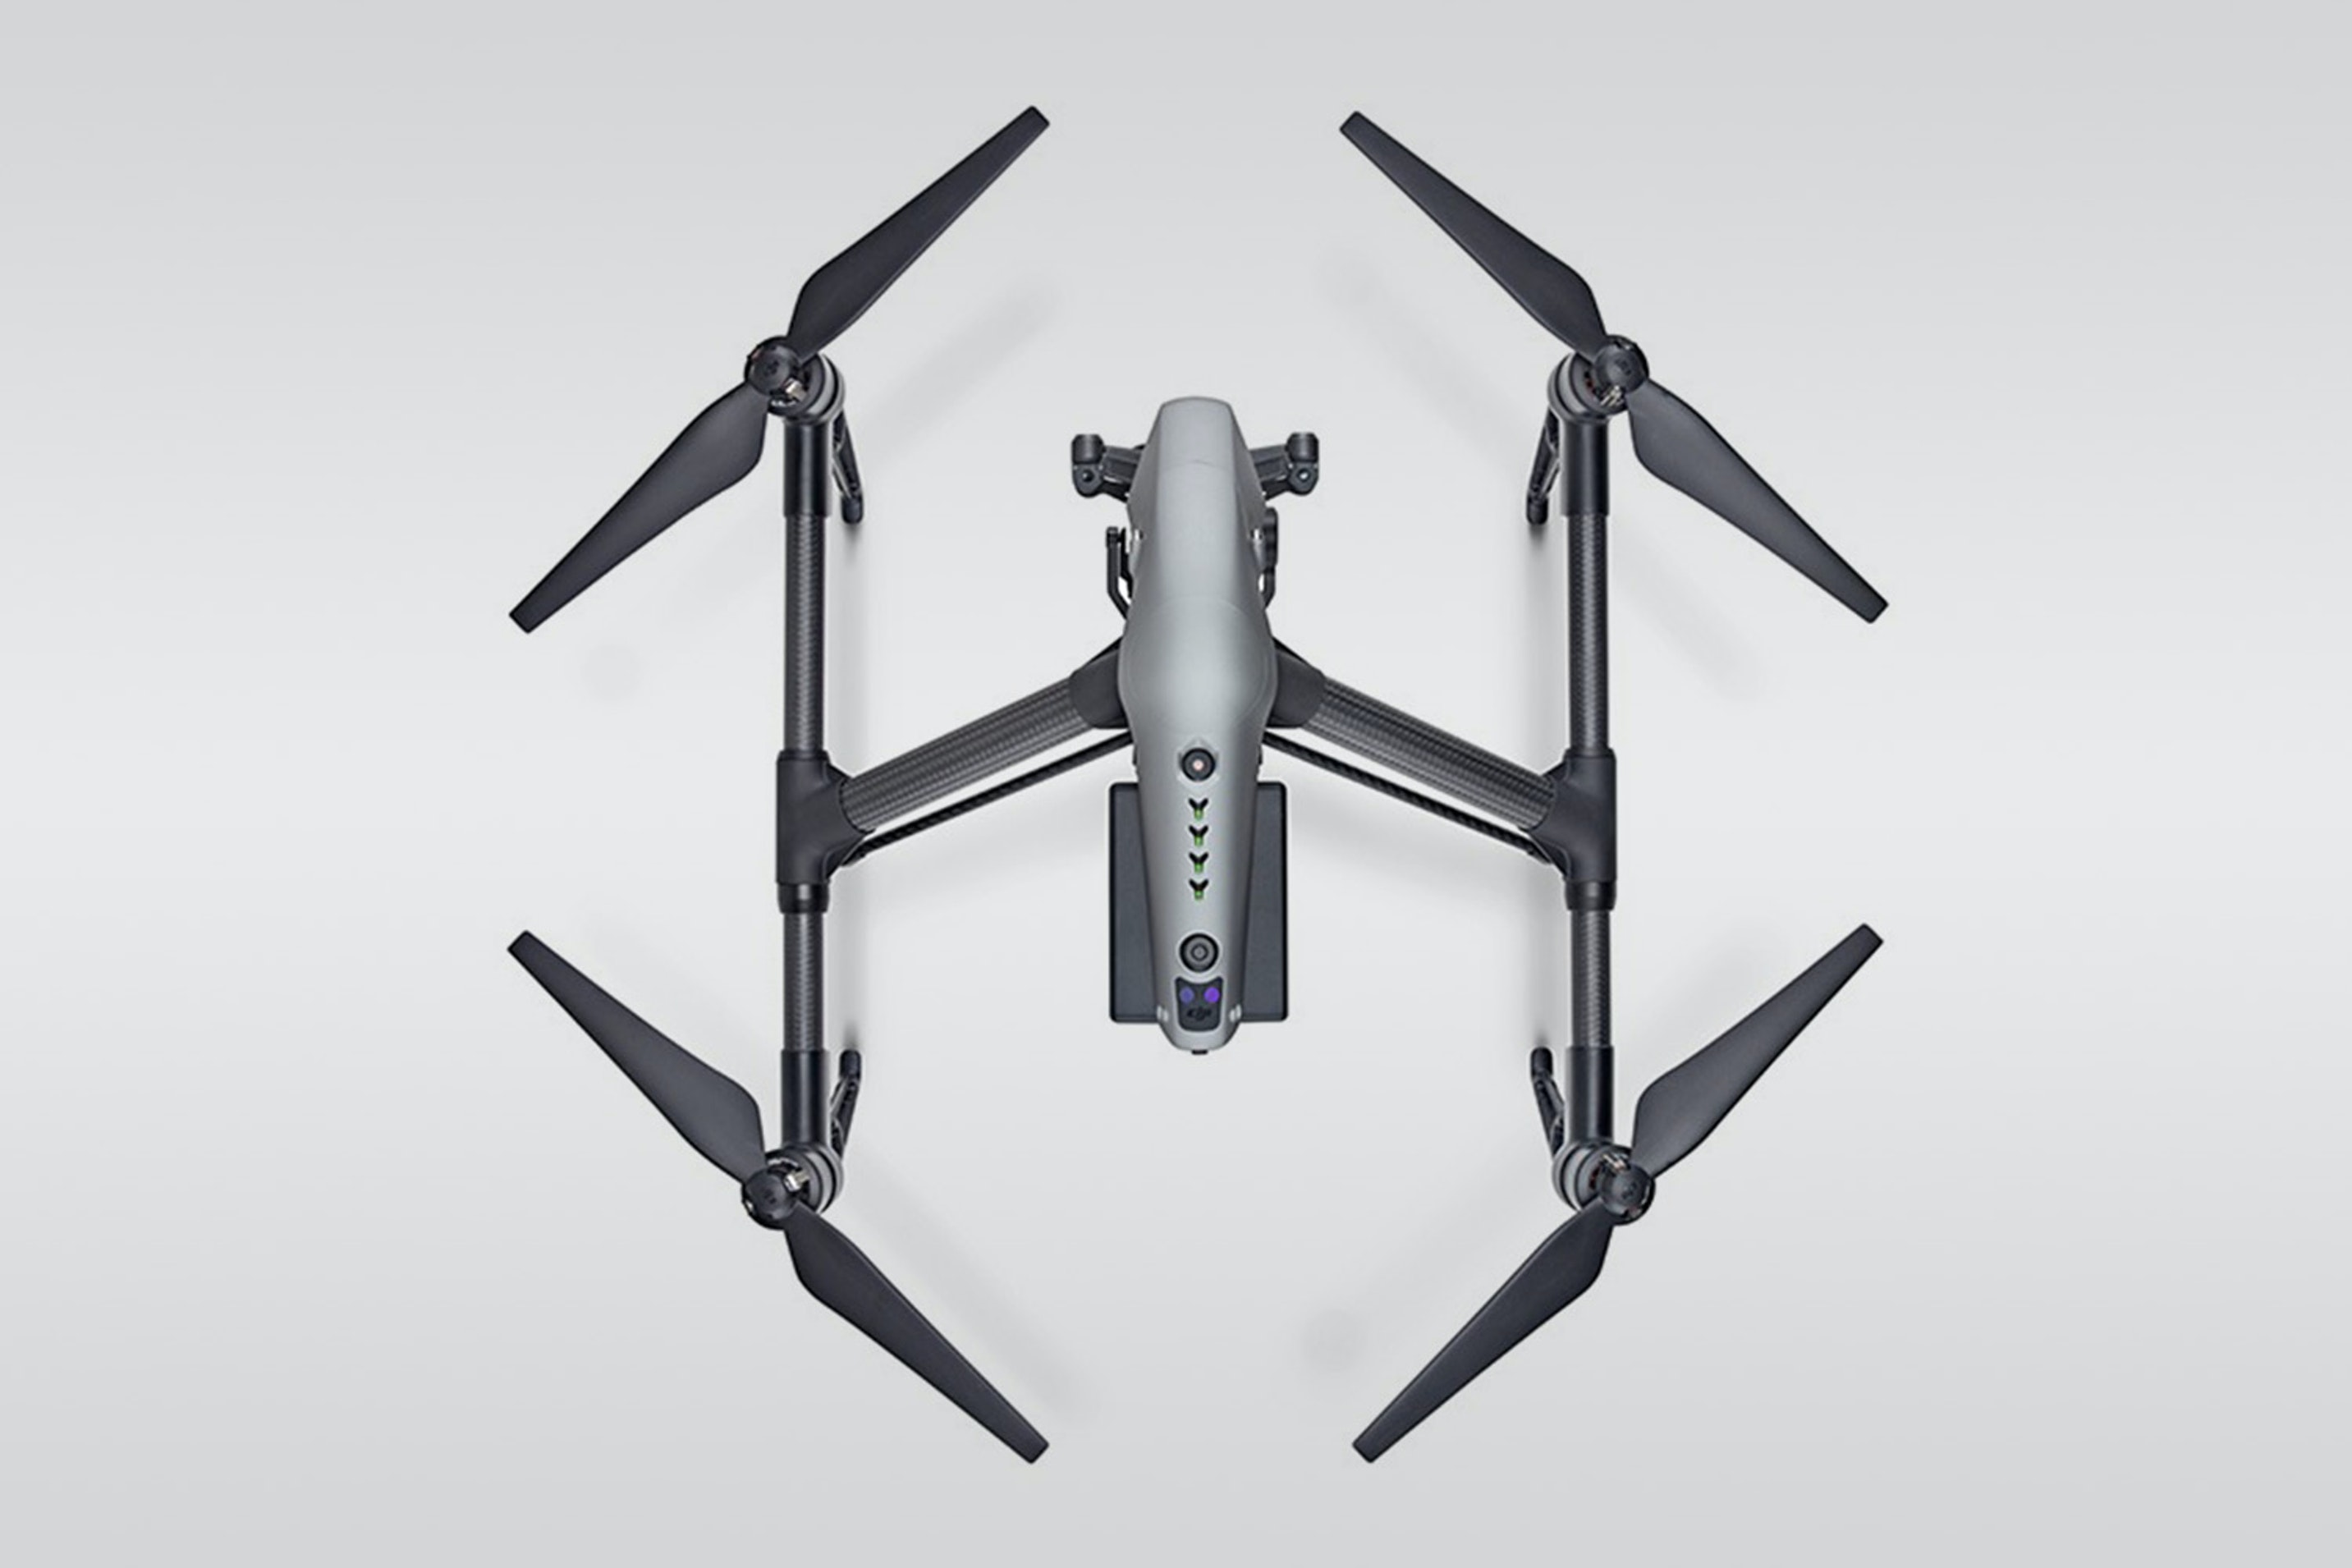 DJI is the worlds leading producer of camera drones and stabilizers Check out our Phantom Mavic and Spark drones Ronin and Osmo gimbals and more!